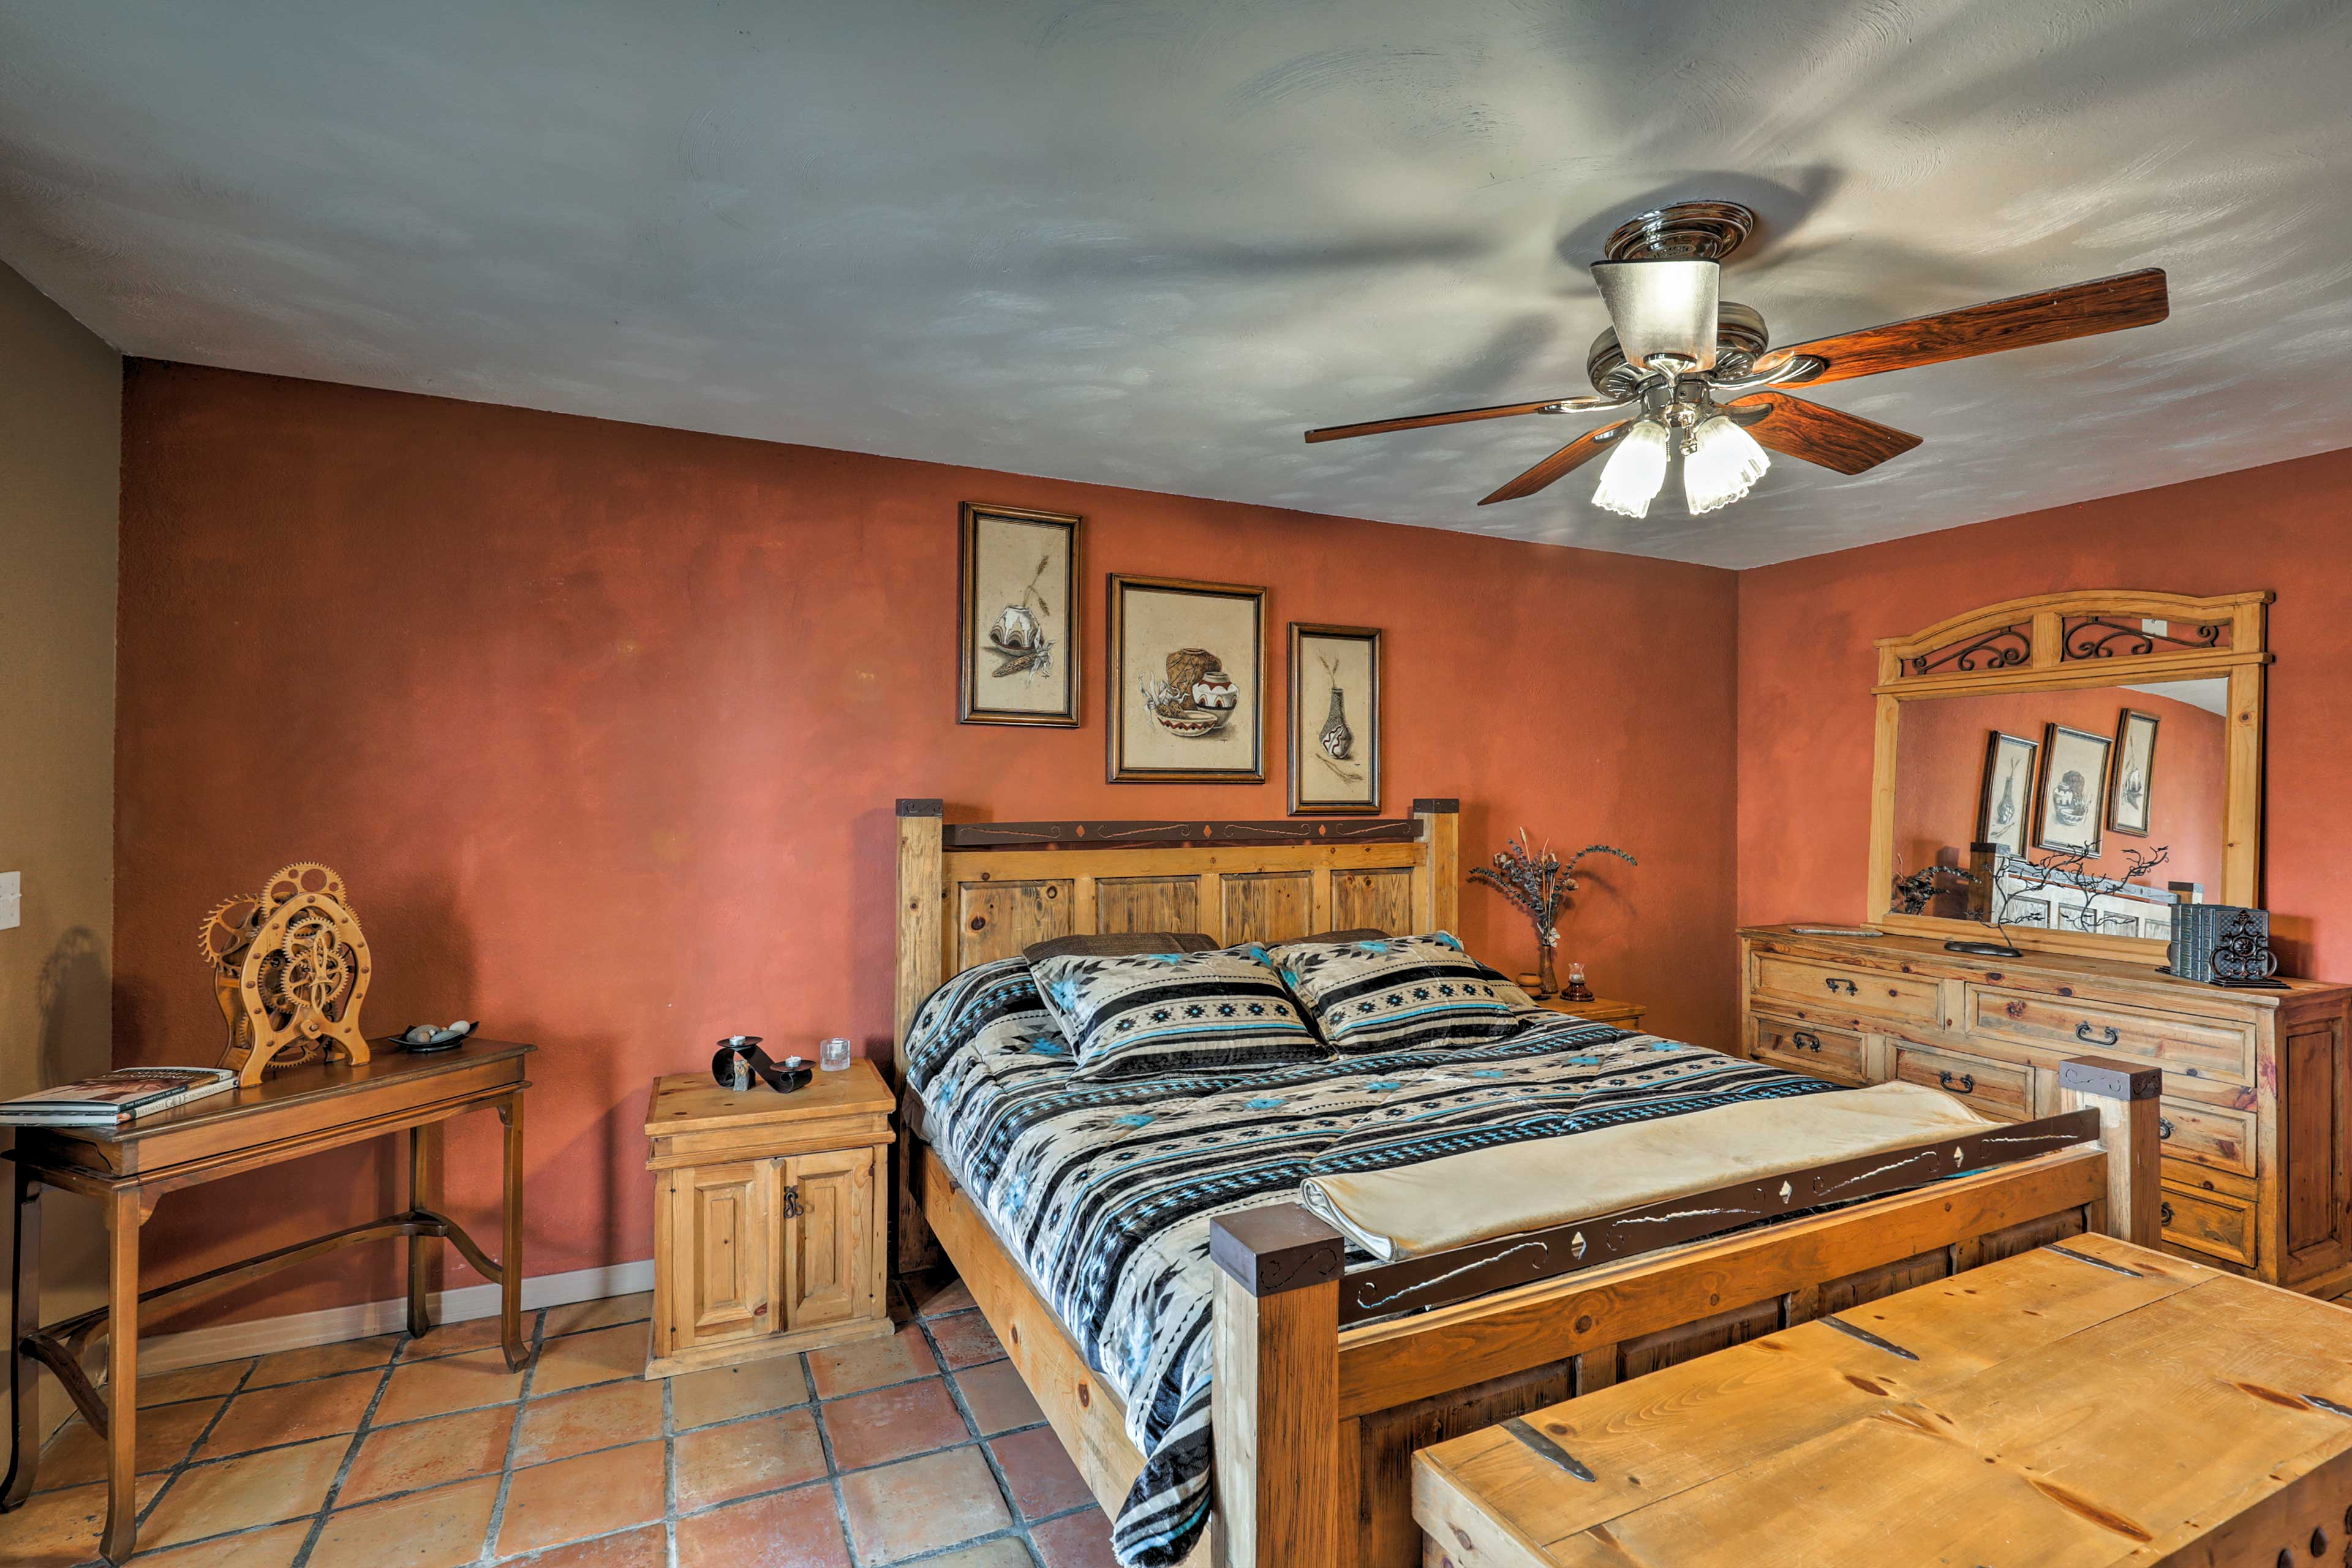 Each room is appointed with wood furnishings.